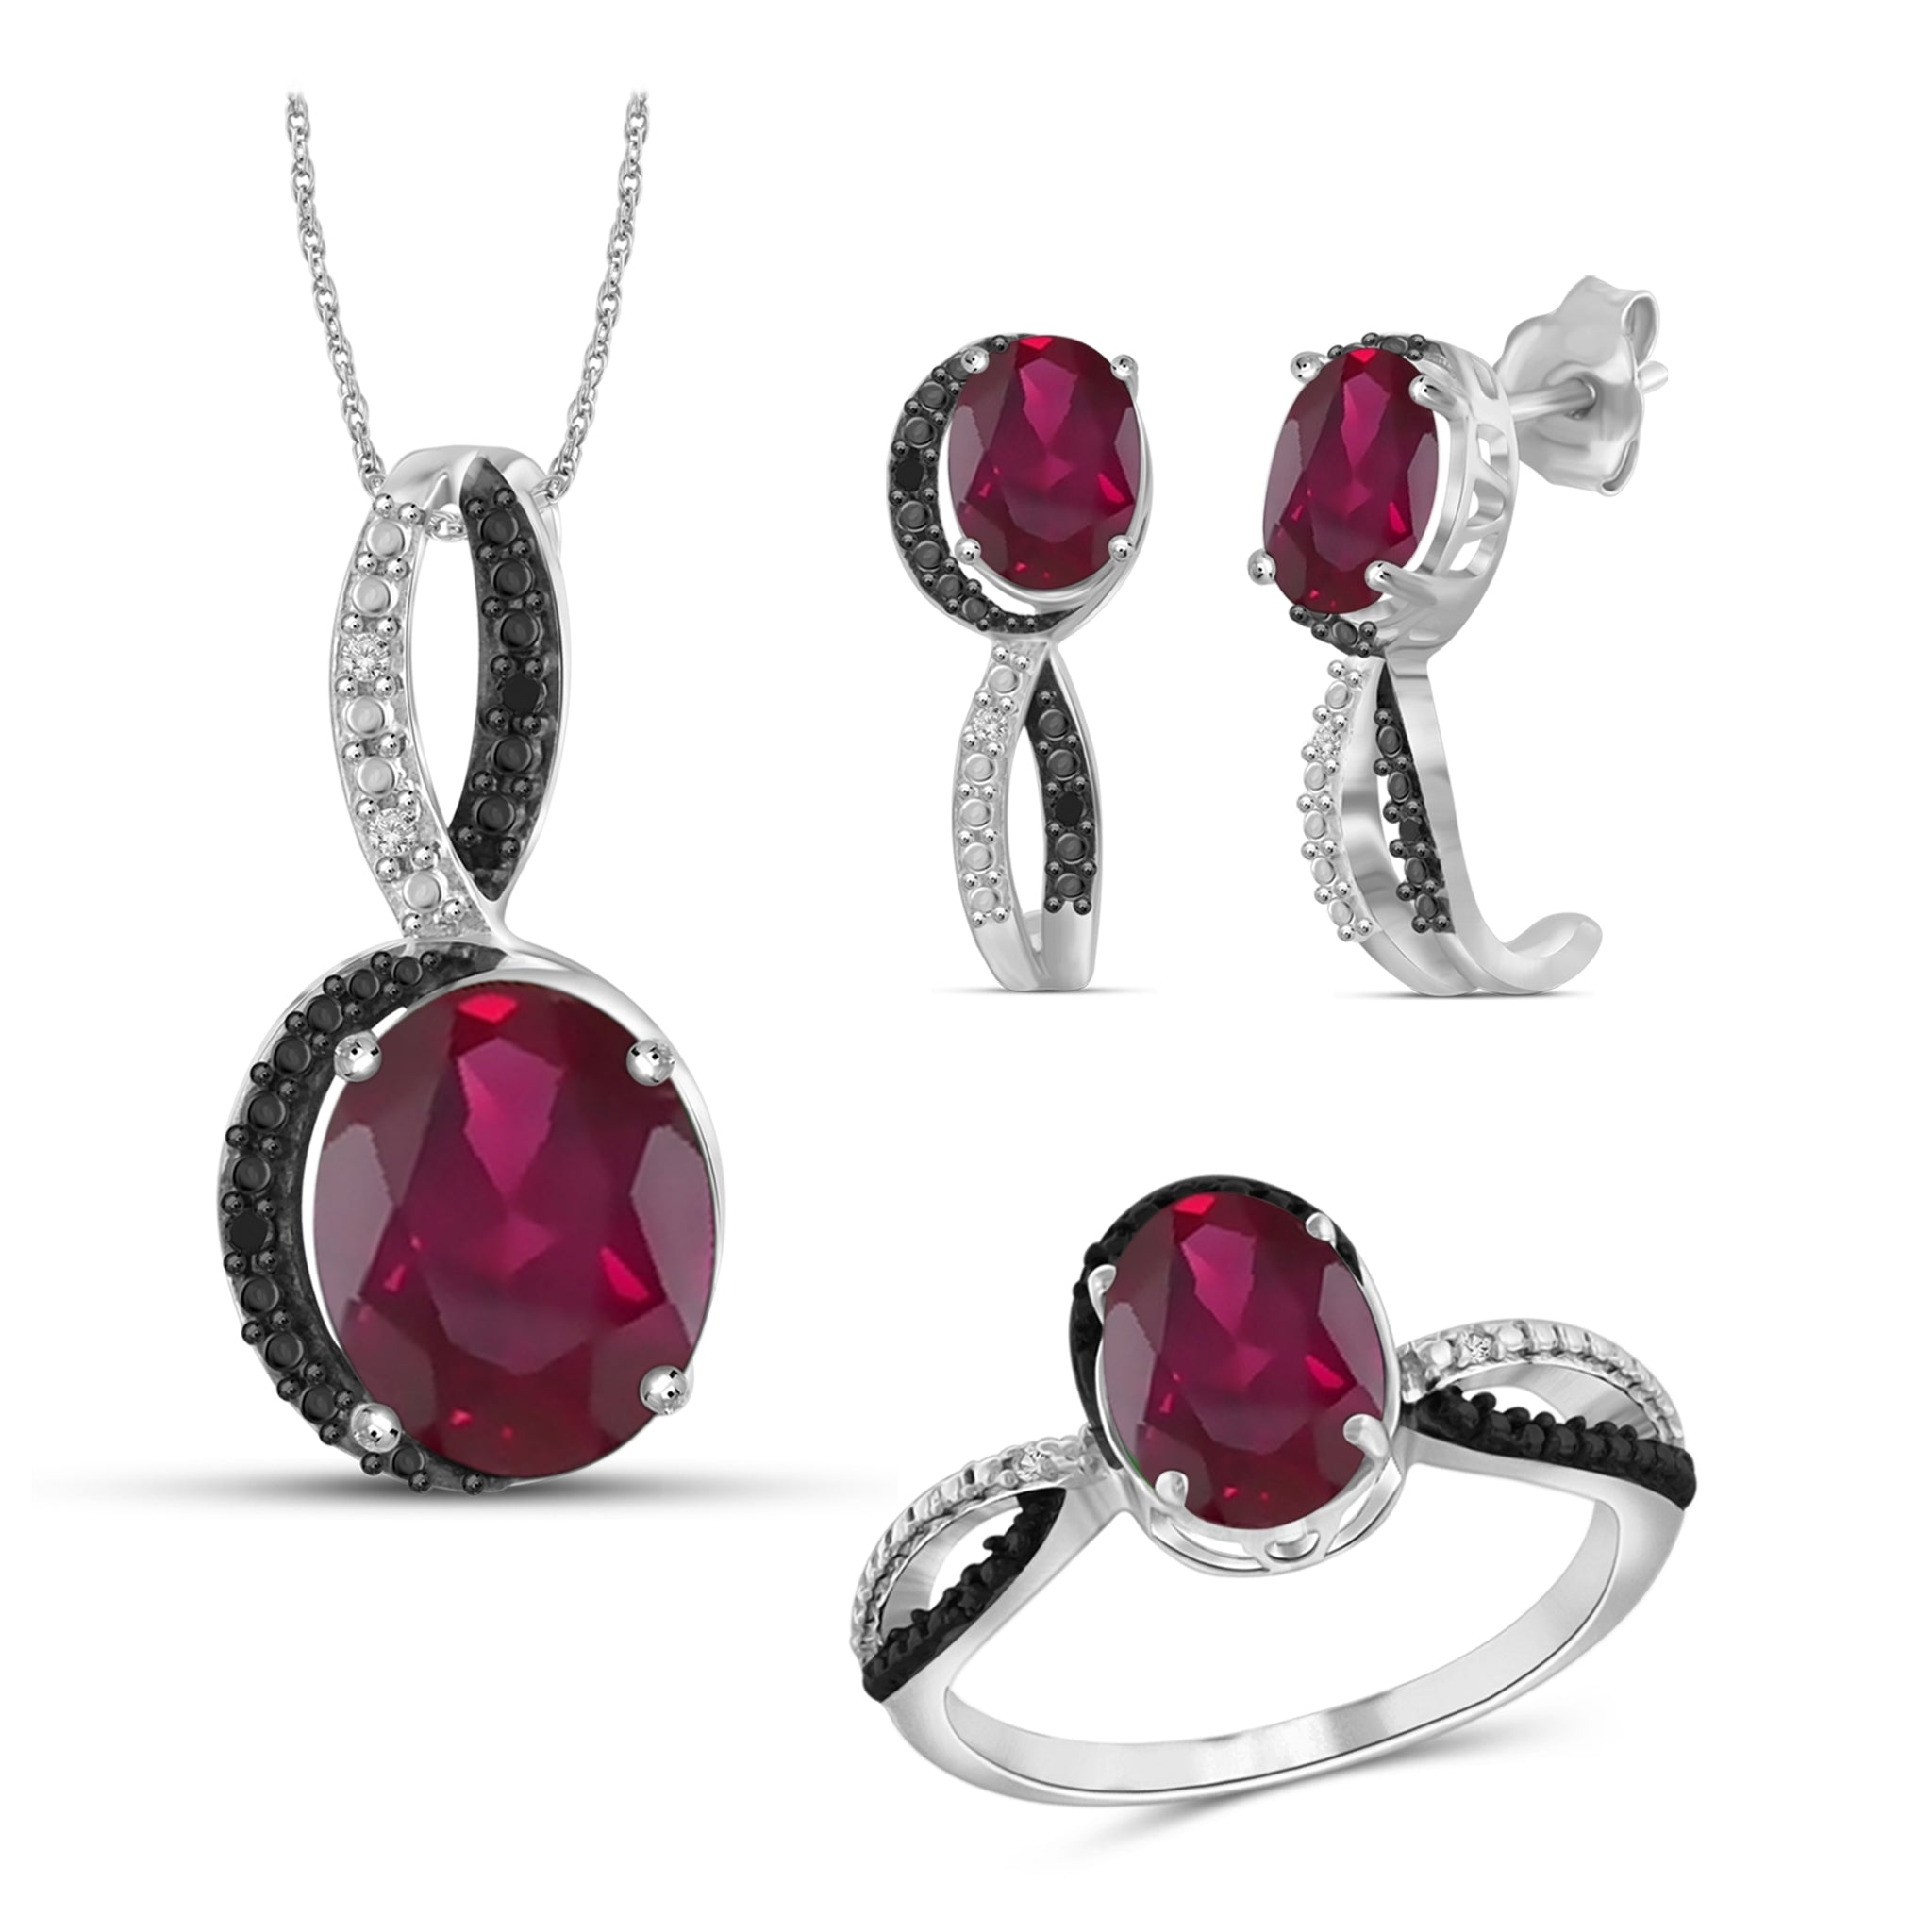 JewelonFire 6.70 Carat T.G.W. Ruby And 1/20 Carat T.W. Black & White Diamond Sterling Silver 3 Piece Jewelry Set - Assorted Colors